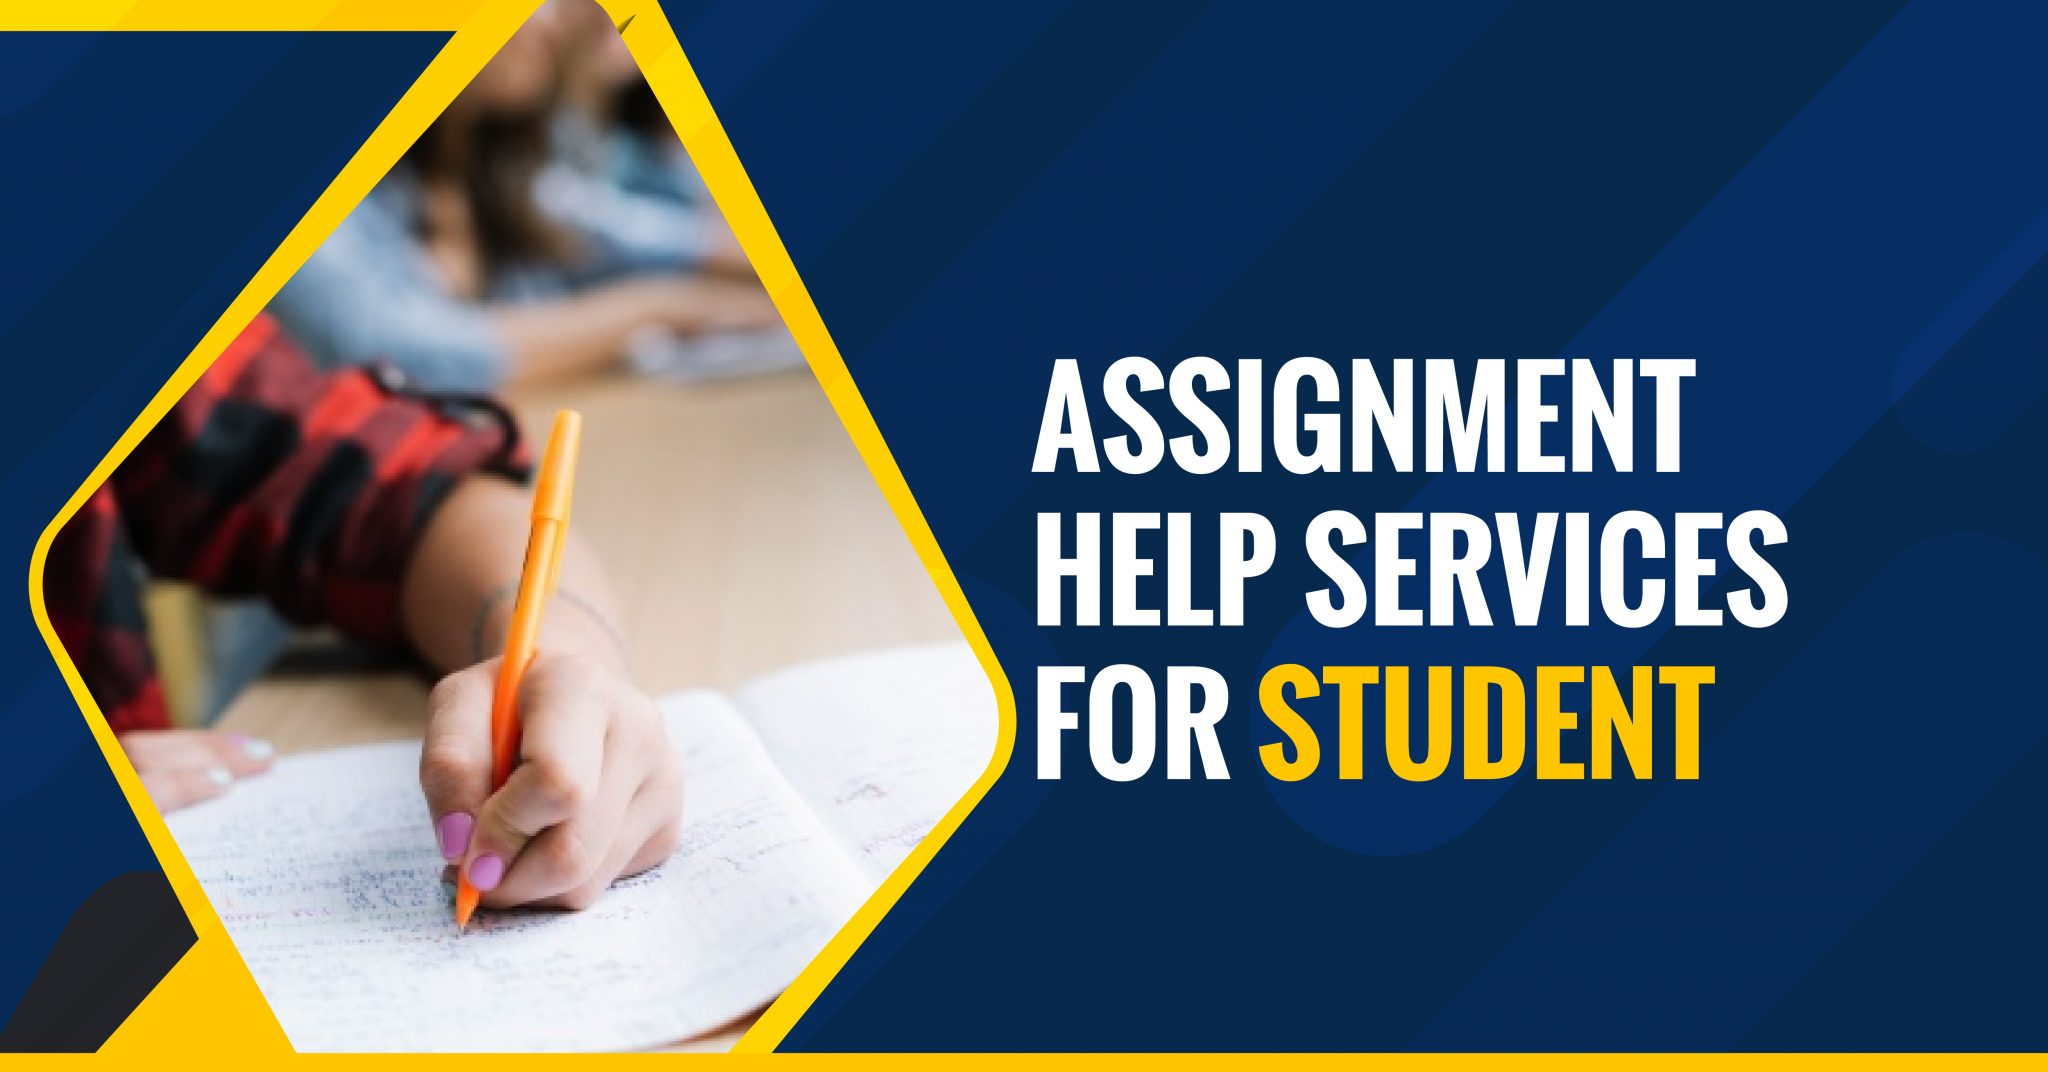 Assignment Help Services for Student